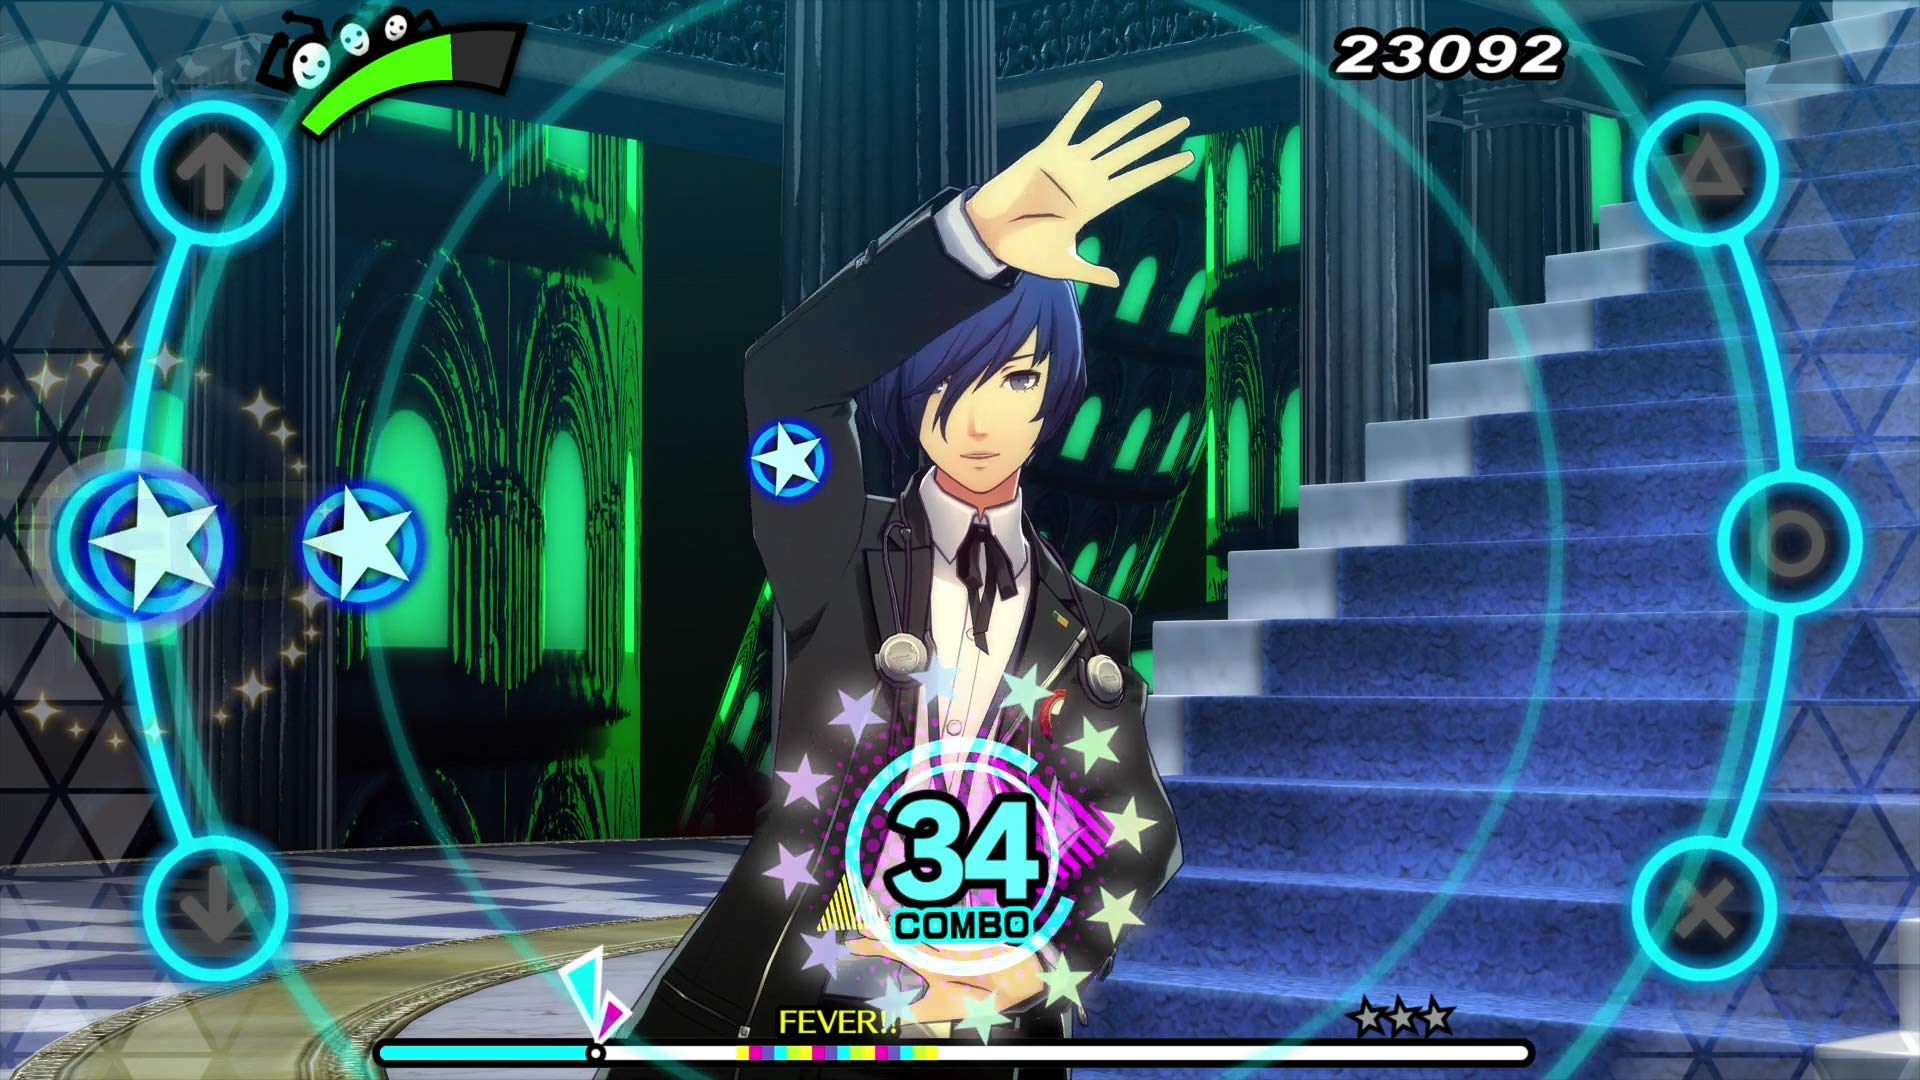 Image result for Persona 3 dancing in moonlight 1920x1080